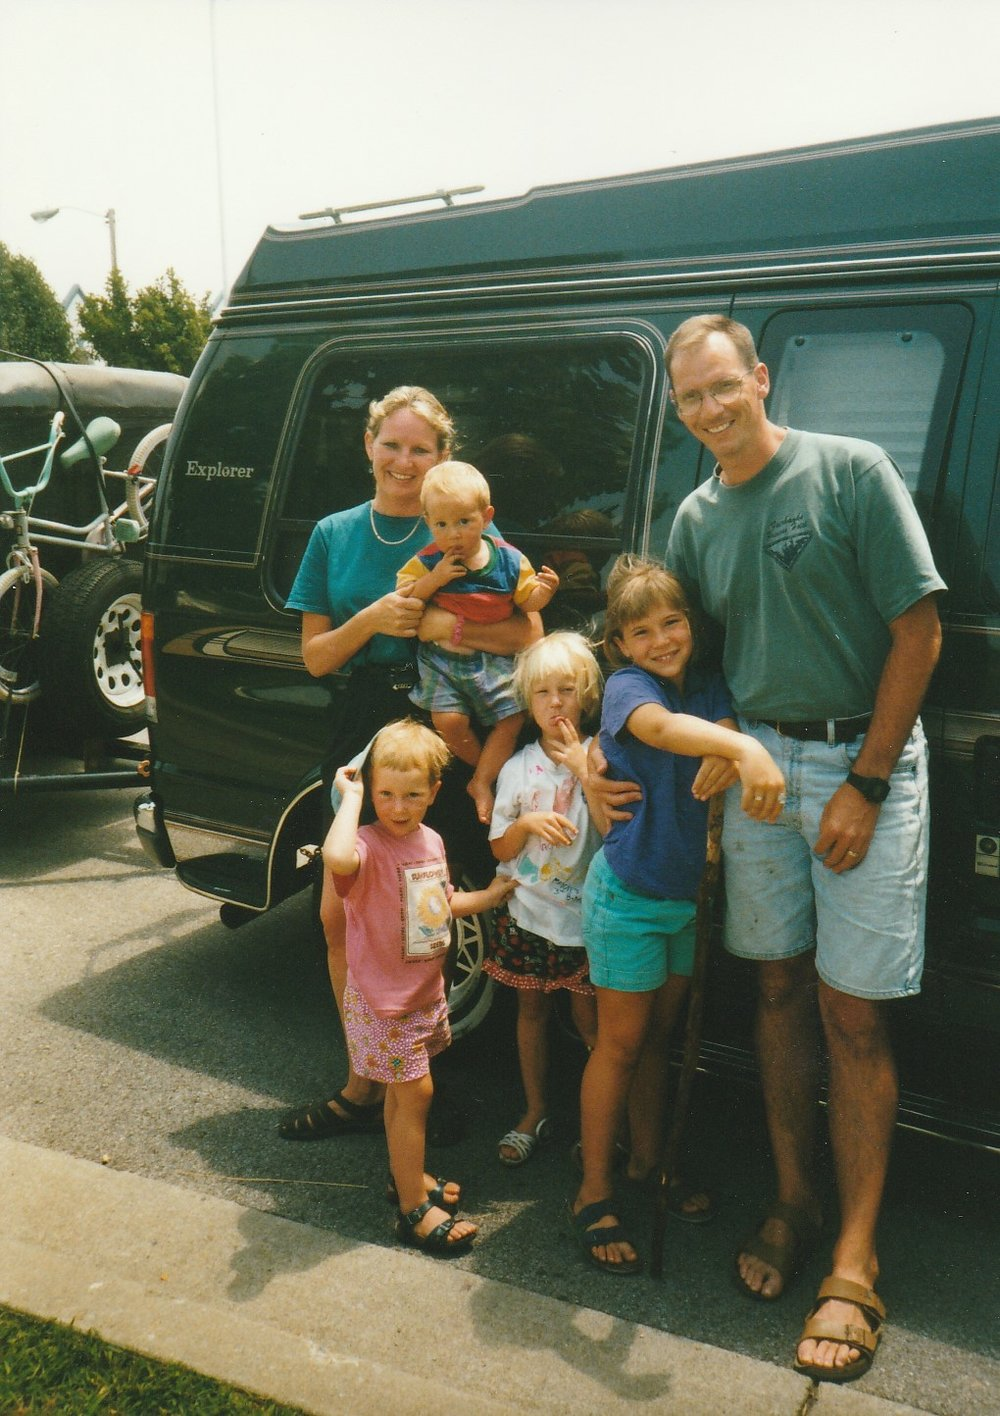 John Sims and his wife, Theresa, and their children on moving day. Courtesy of John Sims